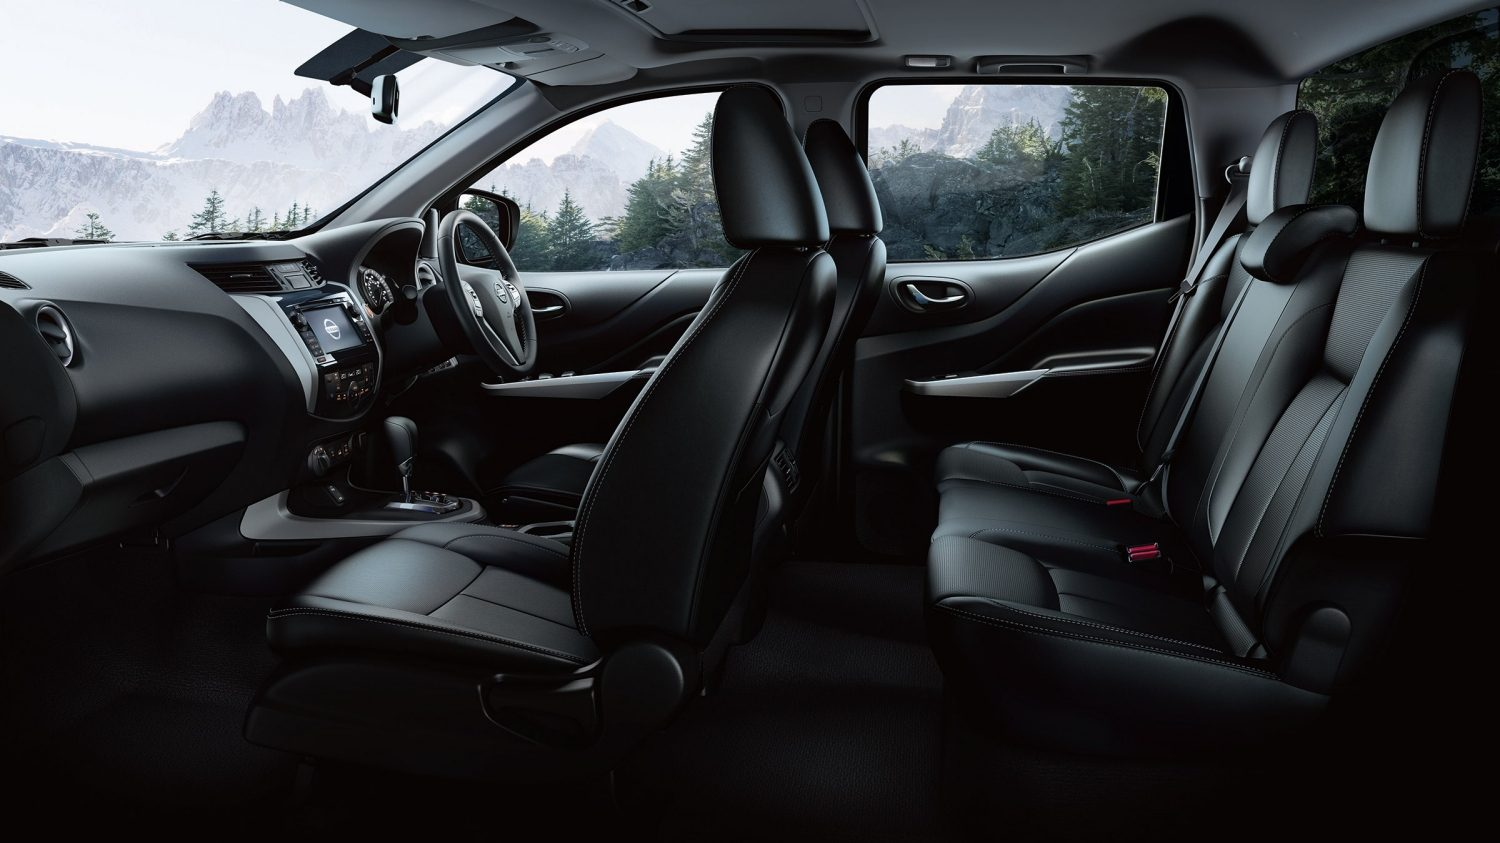 Navara special version interior design